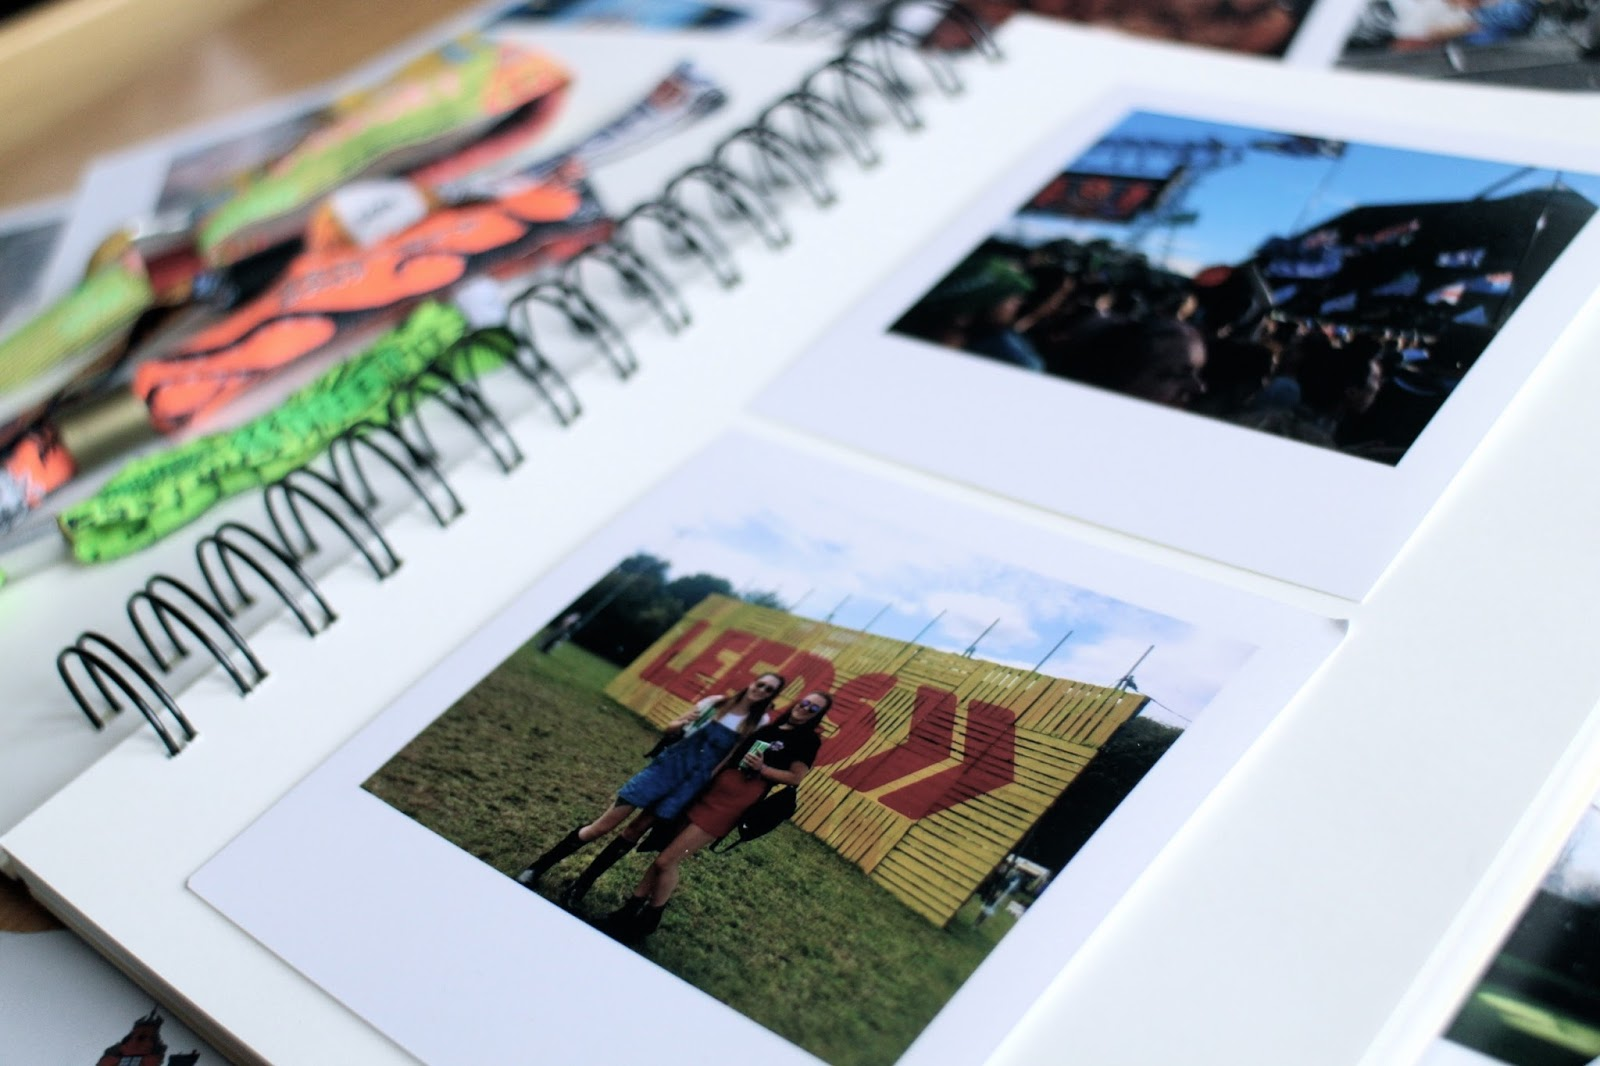 A scrapbook with festival photo prints and wristbands